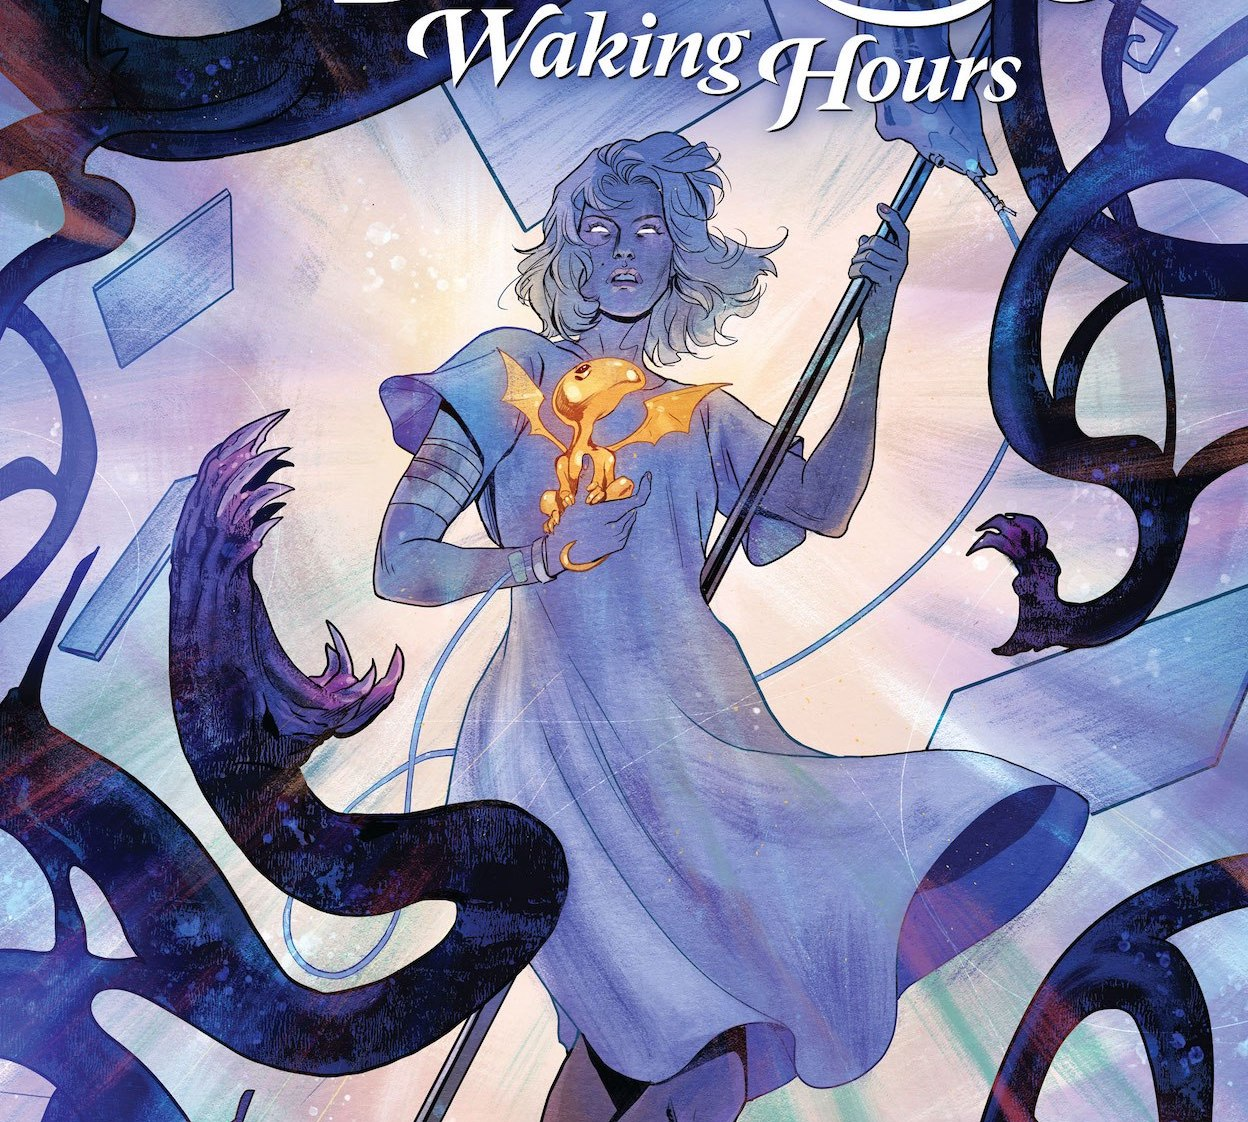 'The Dreaming: Waking Hours' #7 review